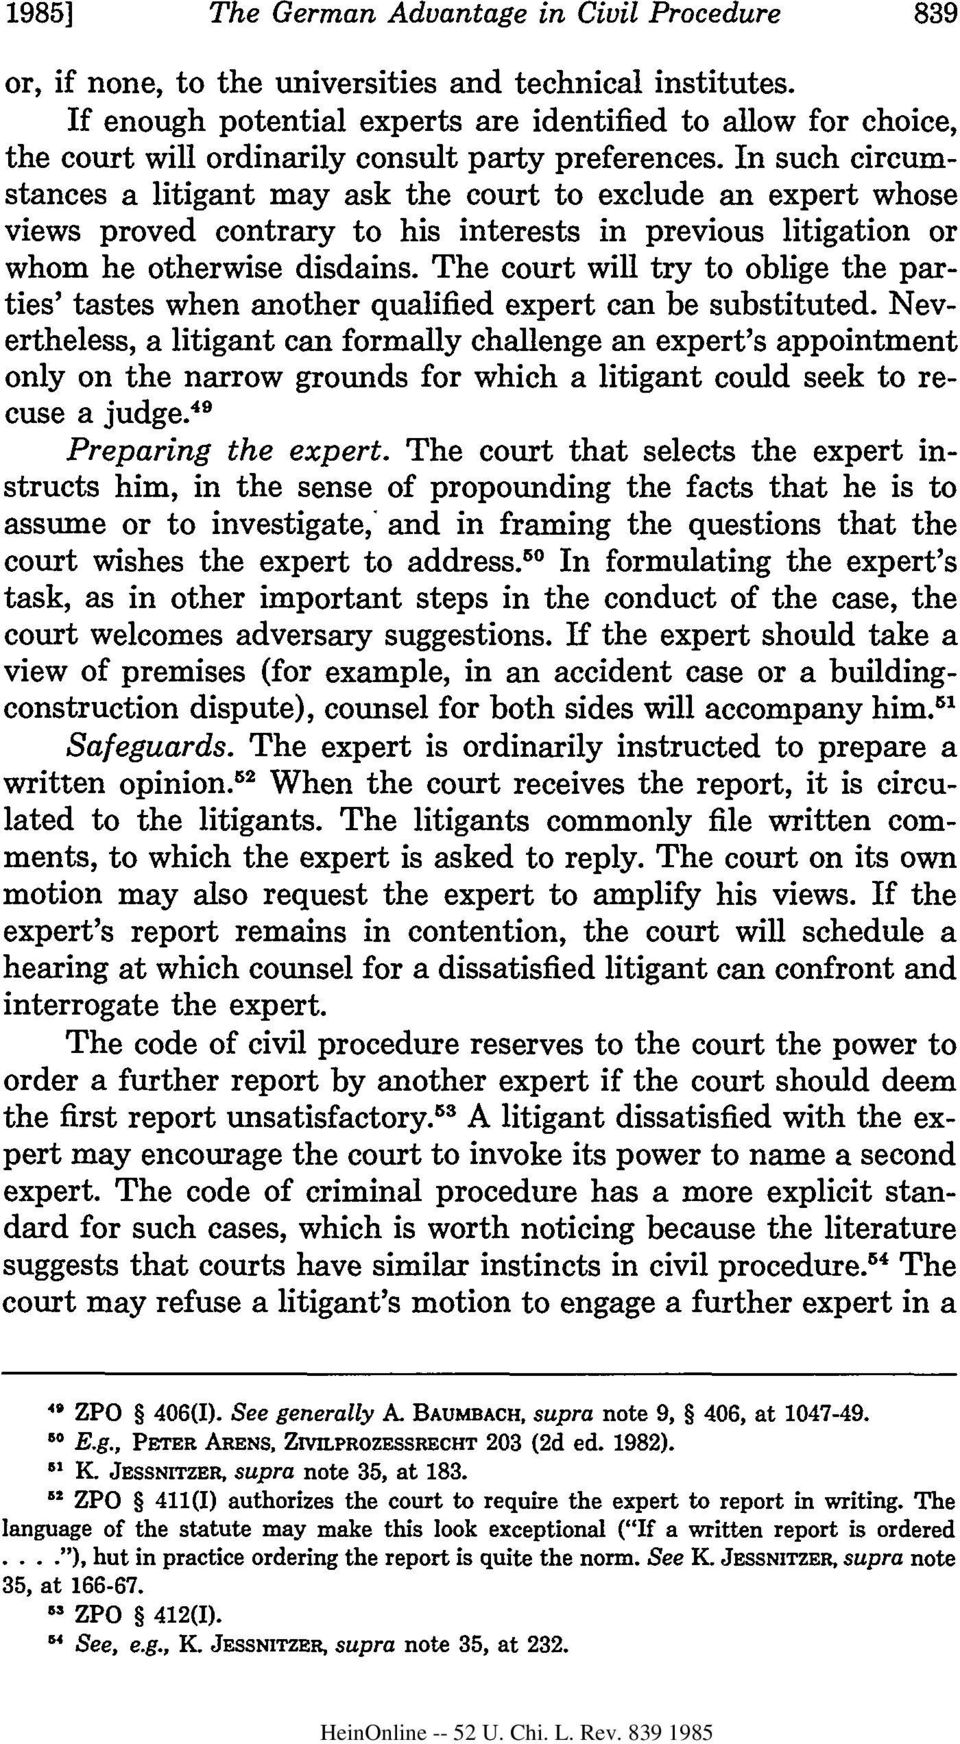 In such circumstances a litigant may ask the court to exclude an expert whose views proved contrary to his interests in previous litigation or whom he otherwise disdains.